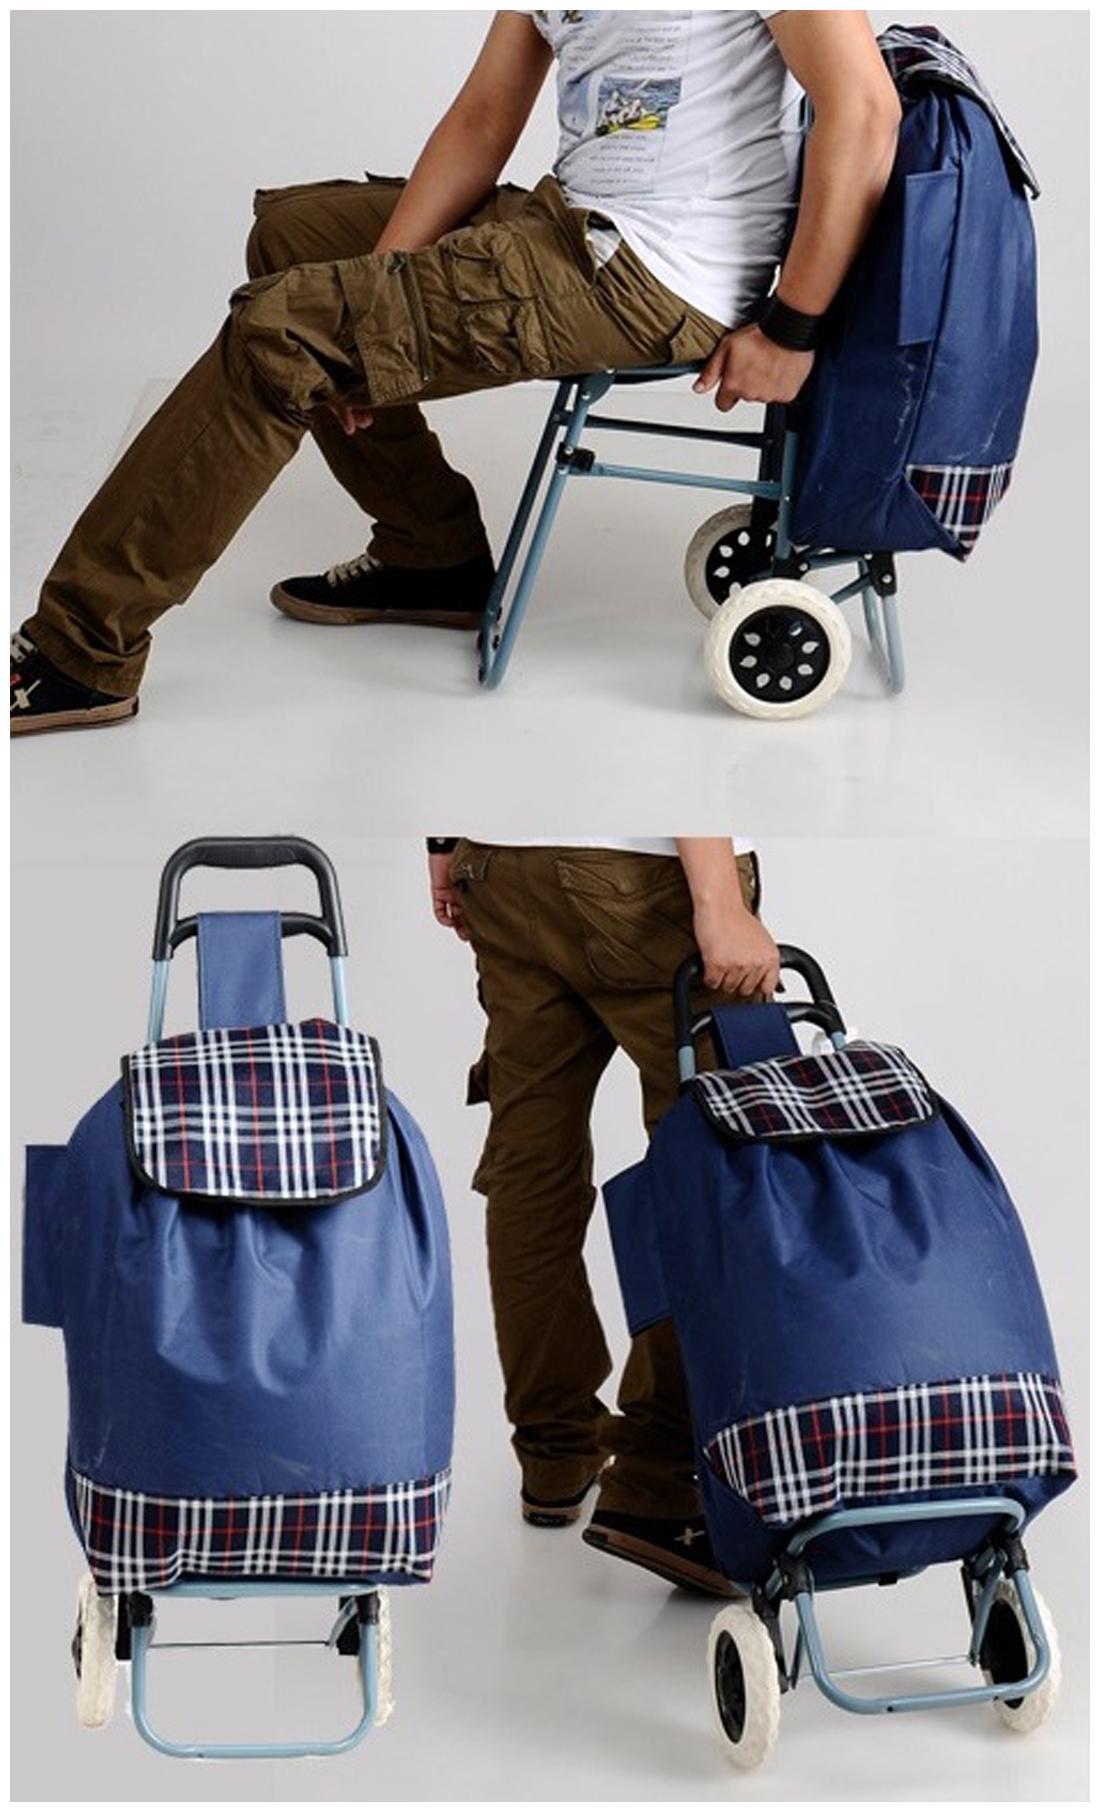 Buy Kawachi Shopping Trolley Bag With Folding Chair Online at Low Prices in  India - Paytmmall.com ddb14dbd30